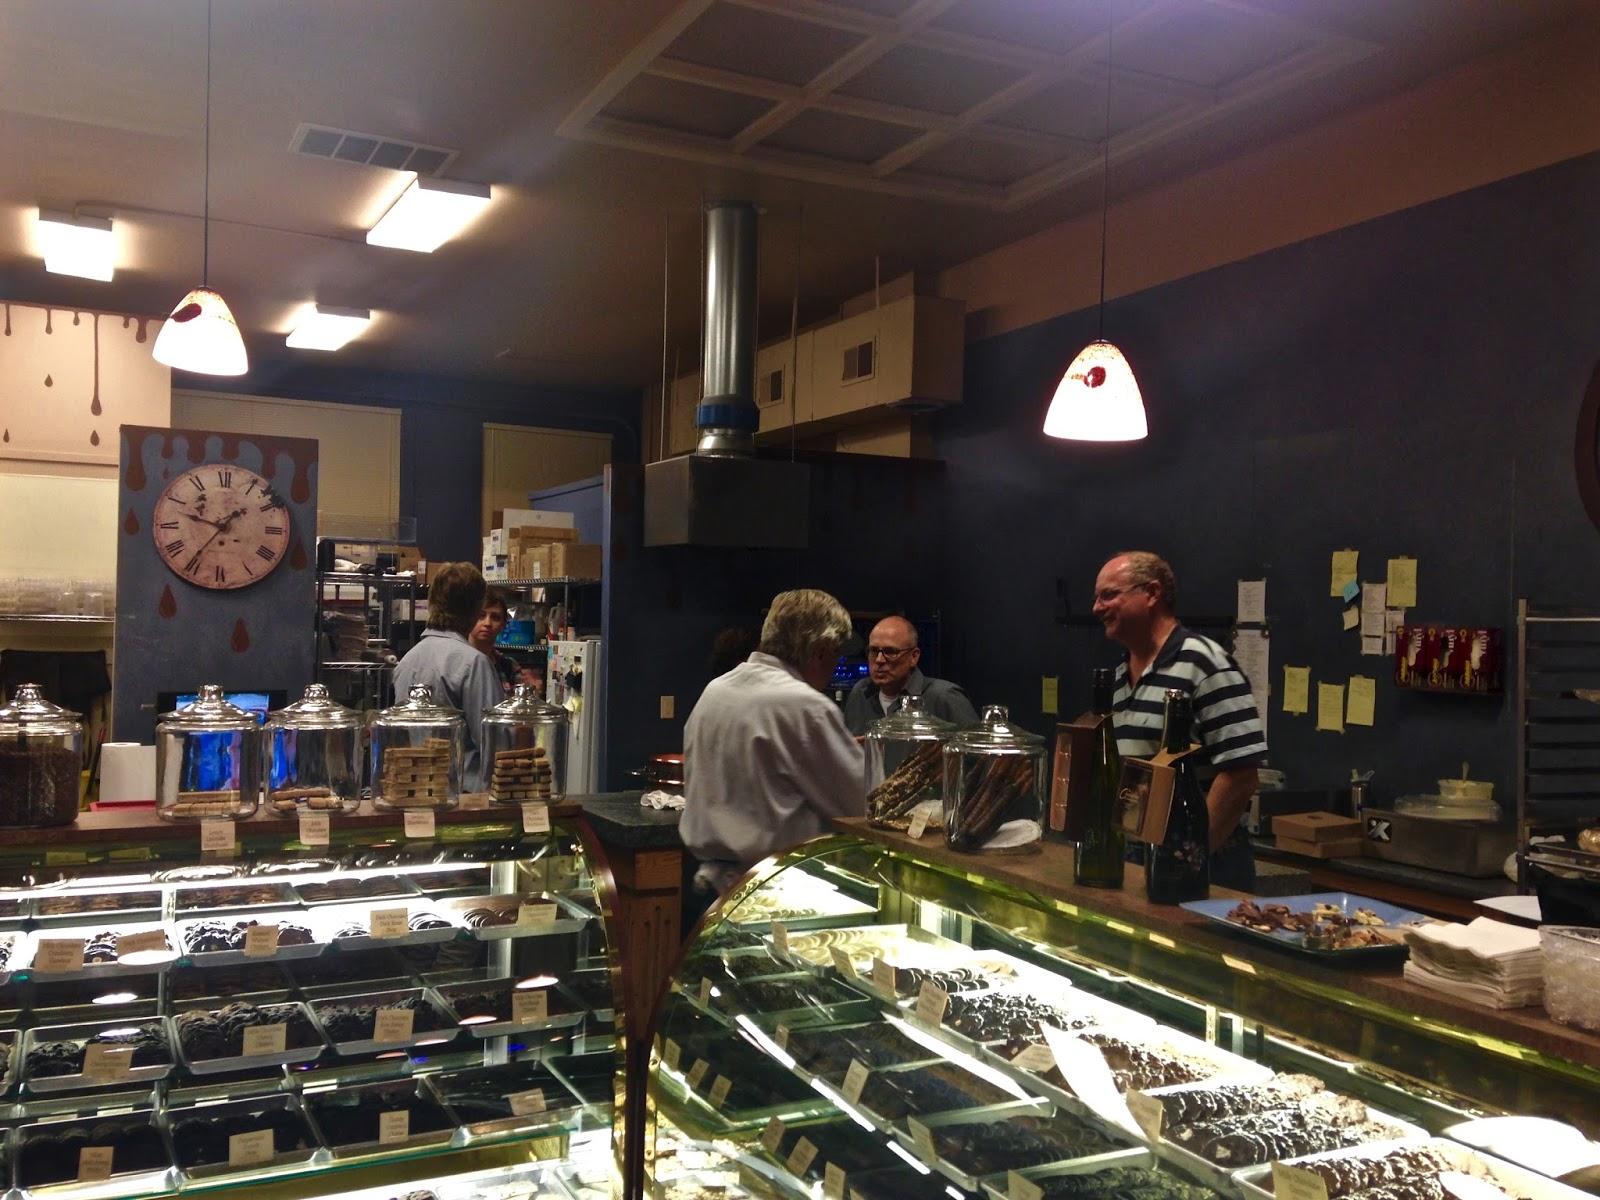 Erik's Fly Fishing Blog: Chocolate Night, Not About Fly Fishing